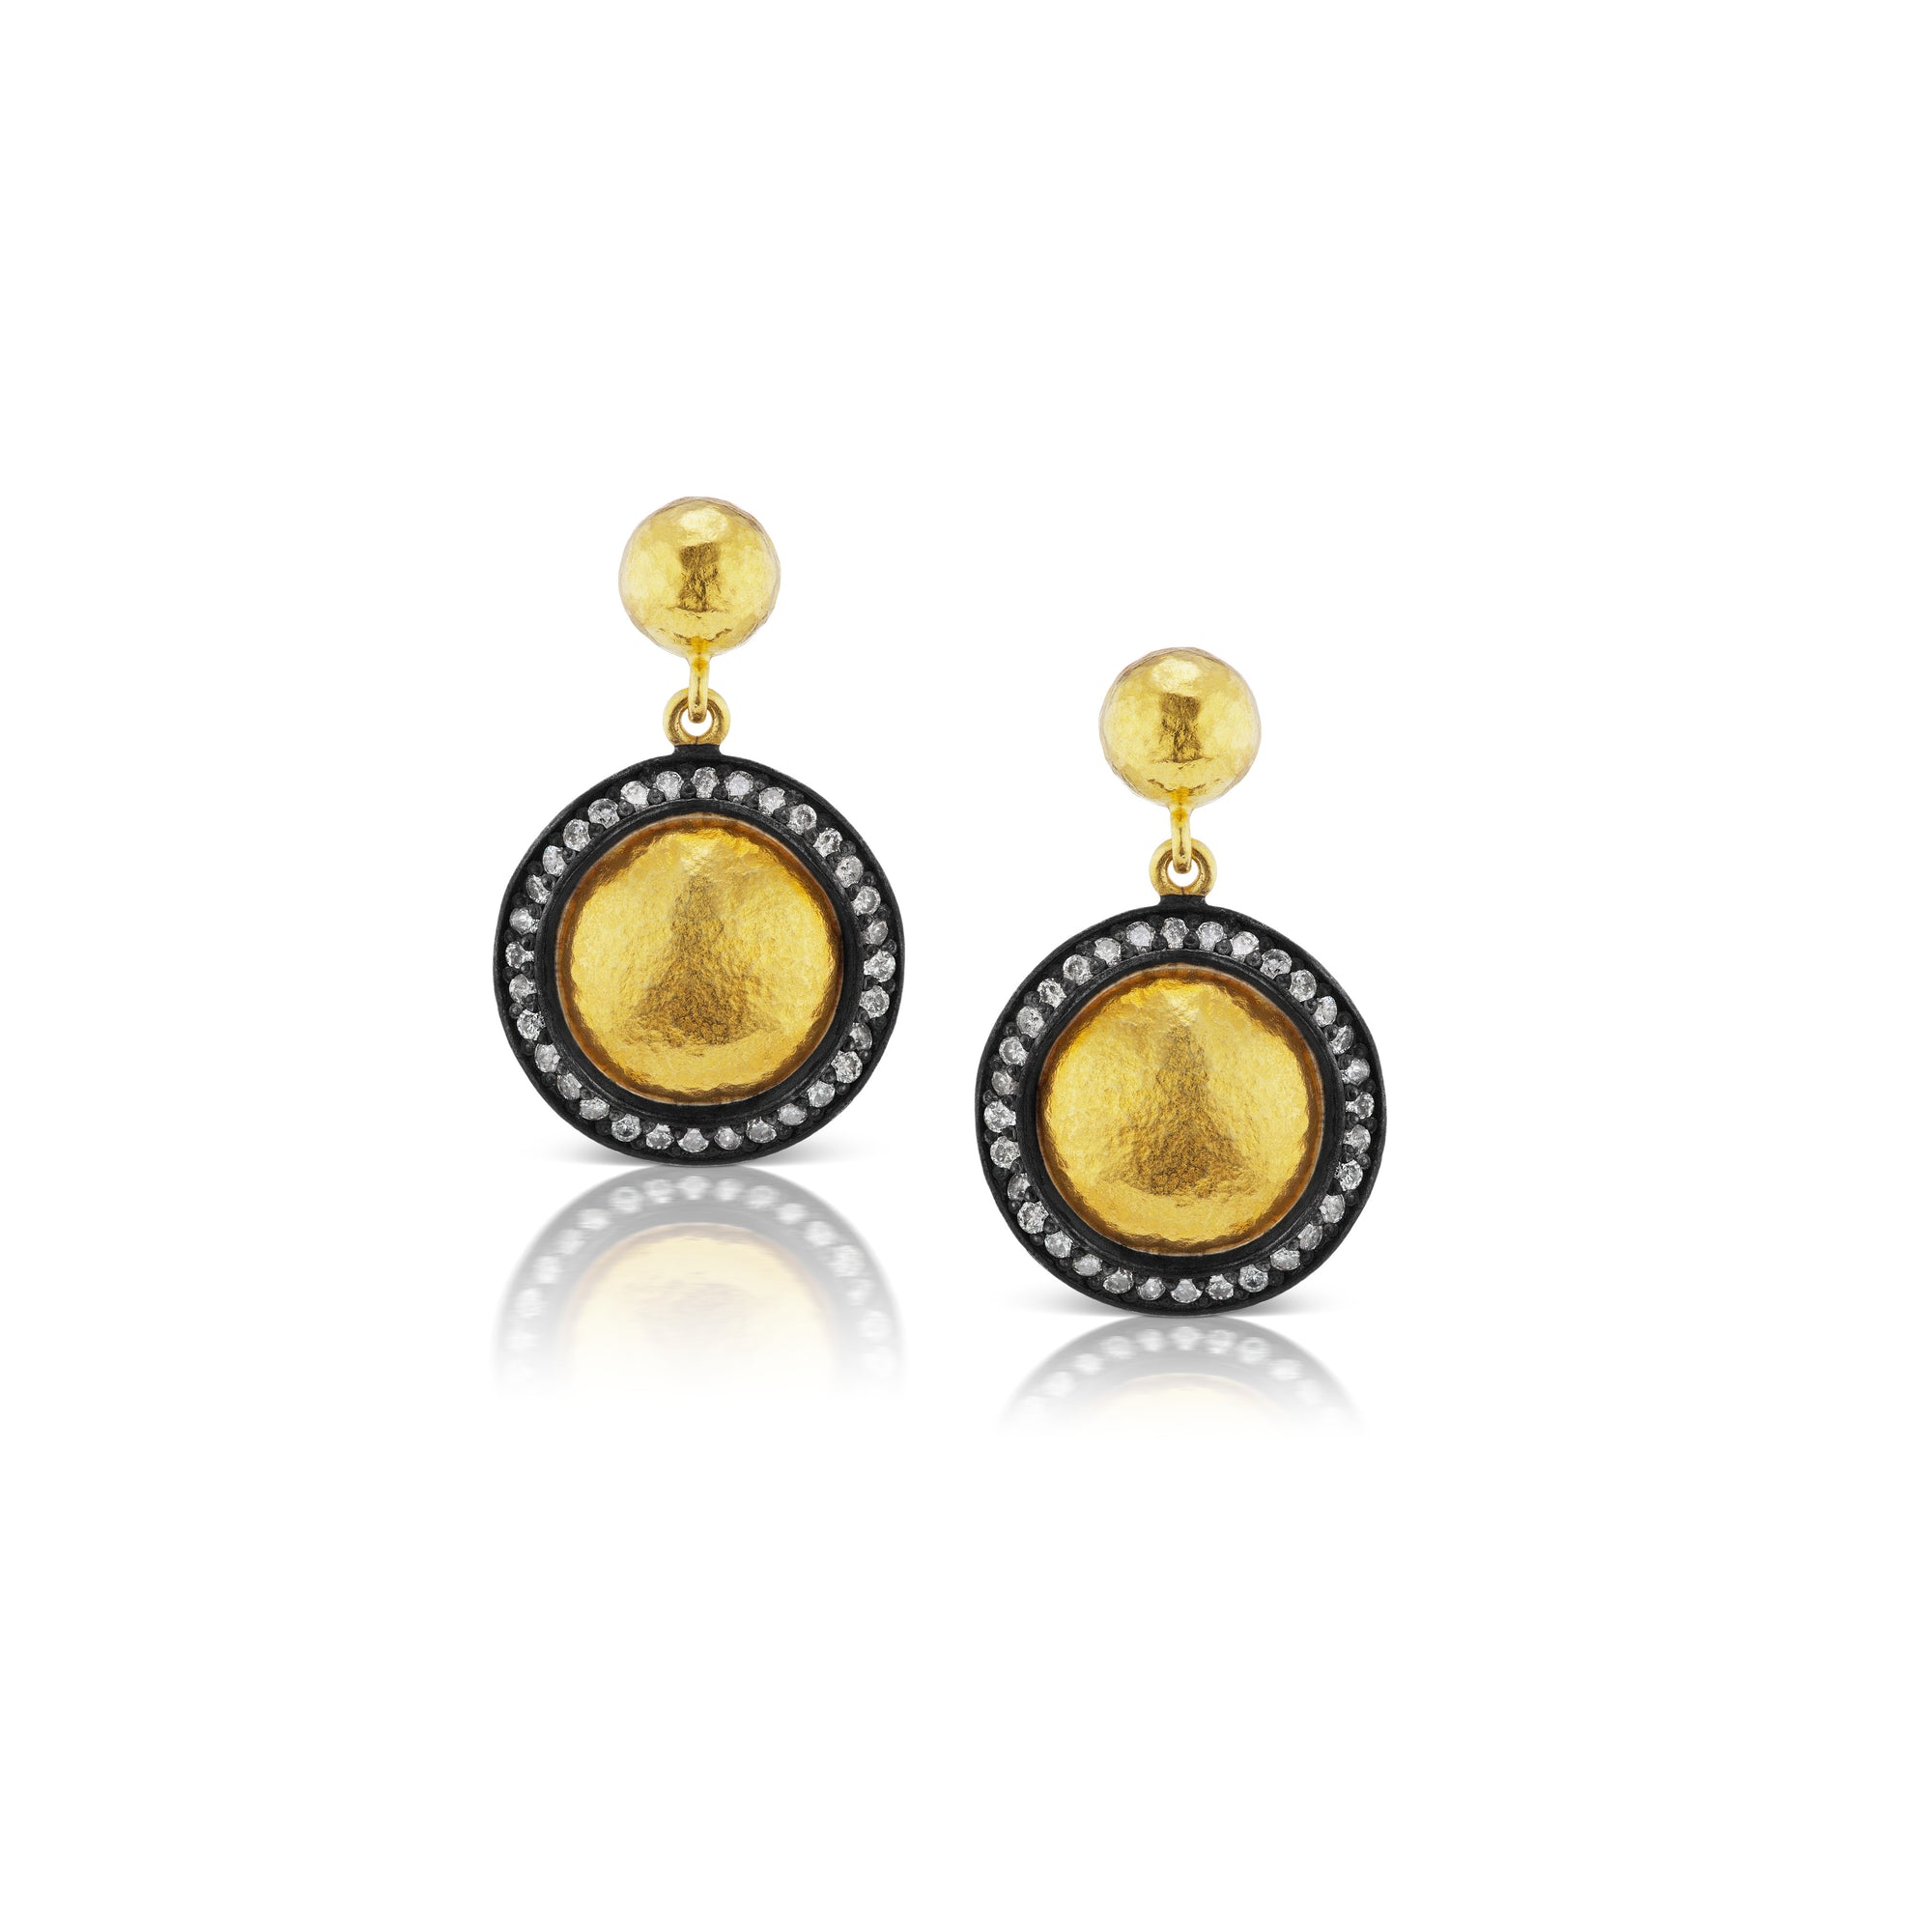 topes beautifultopes gender ladies dailywear earrings parmar jewellers drop gold pune hallmarkjewellery shop earing fancy jewellersparmar ladiestopes